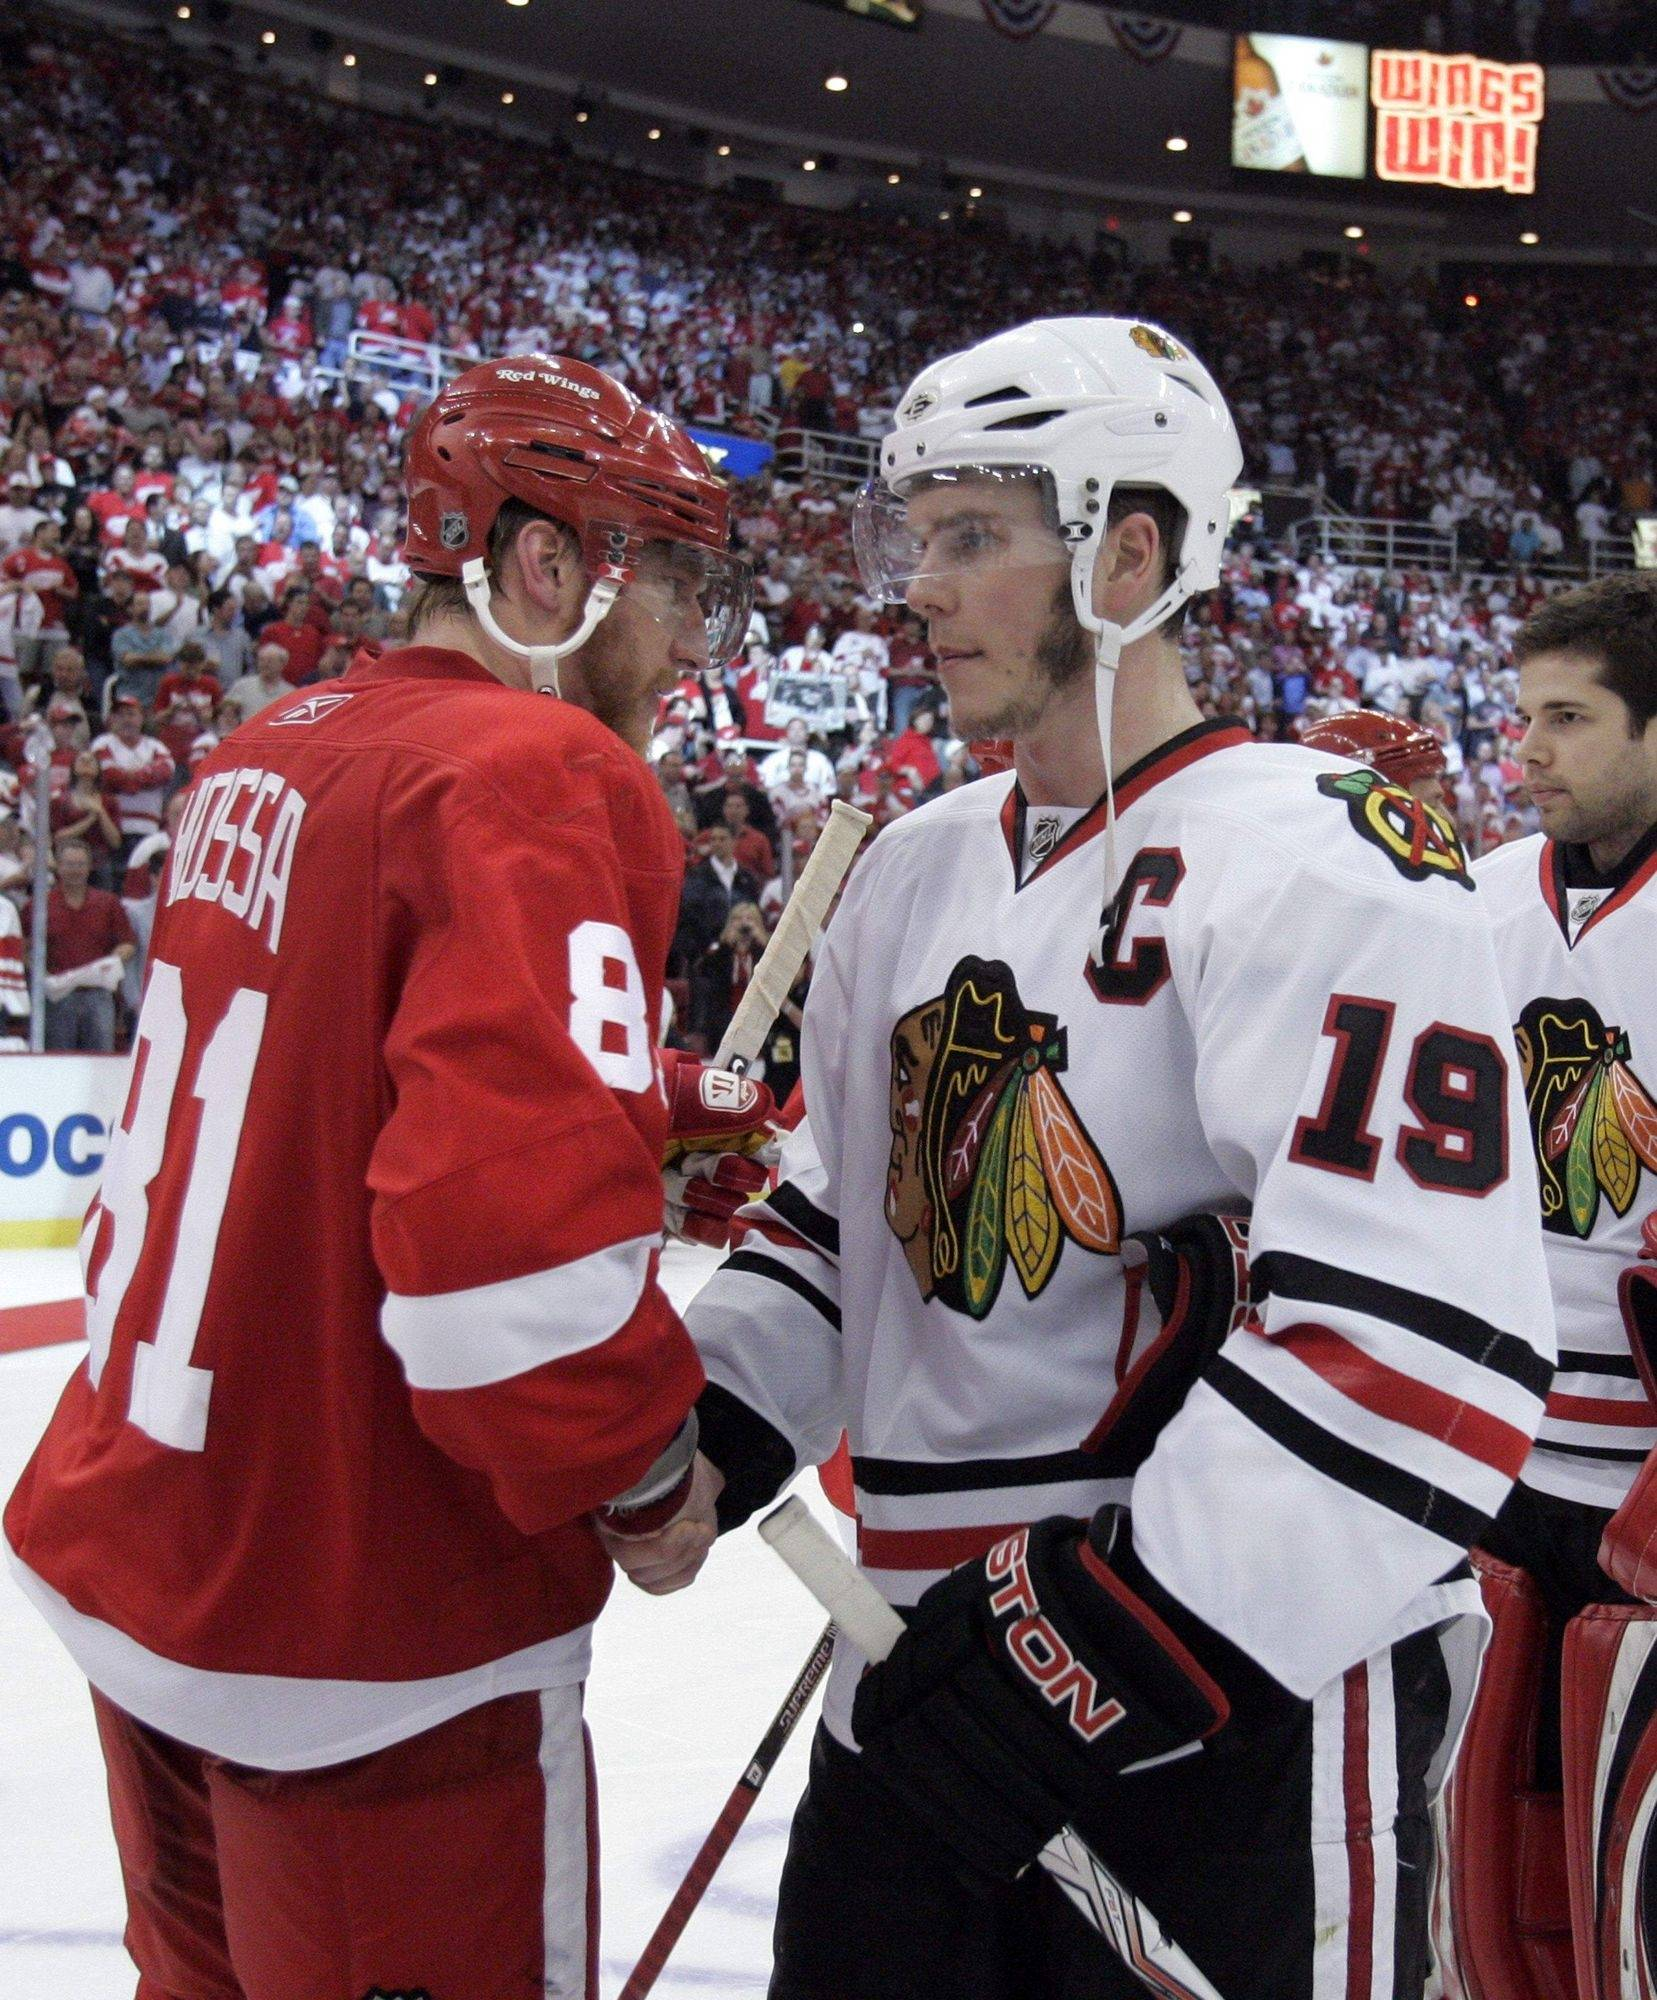 Marian Hossa has been to past two Stanley Cup Finals -- albeit with the Red Wings -- while Jonathan Toews and most of his teammates have all of three rounds of playoff experience.